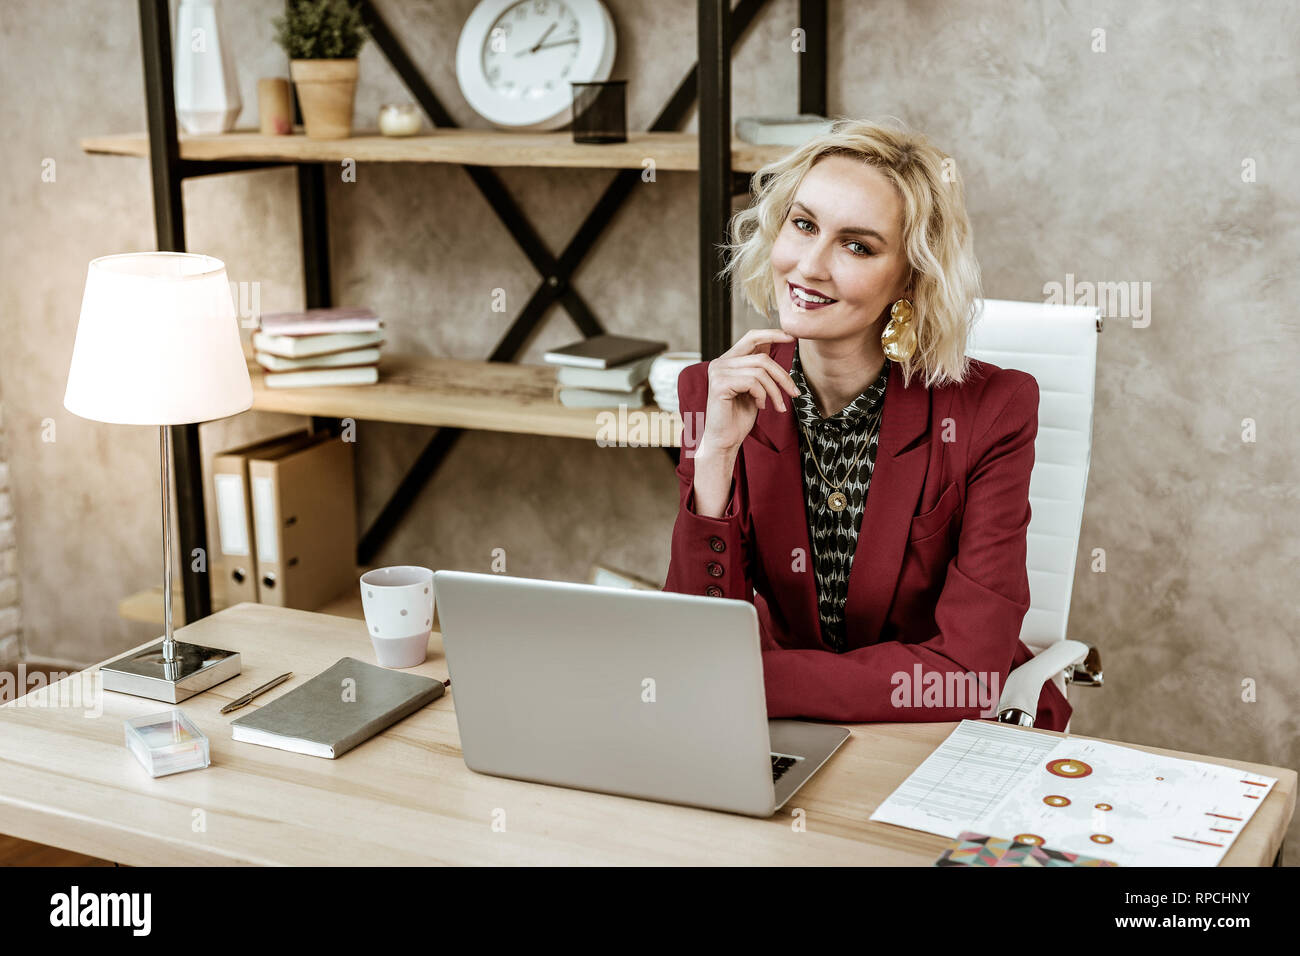 Coquettish blonde woman sitting at the desk in front of laptop - Stock Image